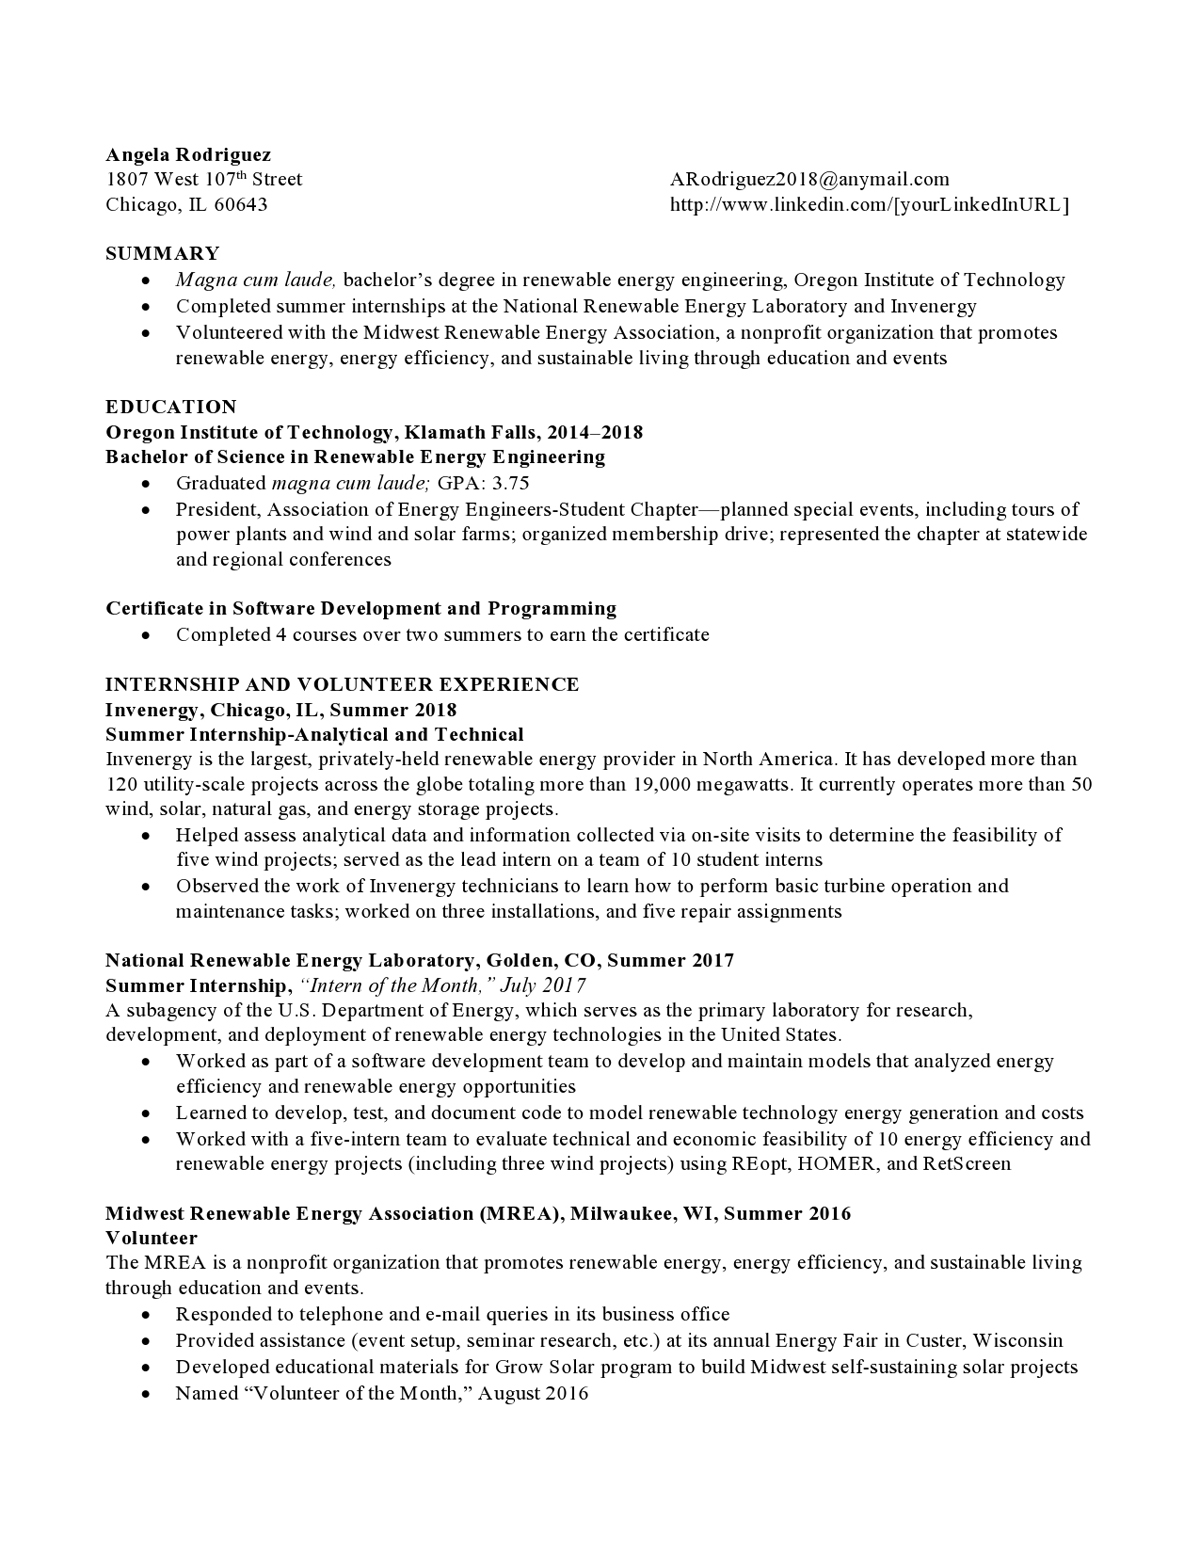 energy entry level resume samples templates vault functional cresfuenergy20 executive ceo Resume Entry Level Functional Resume